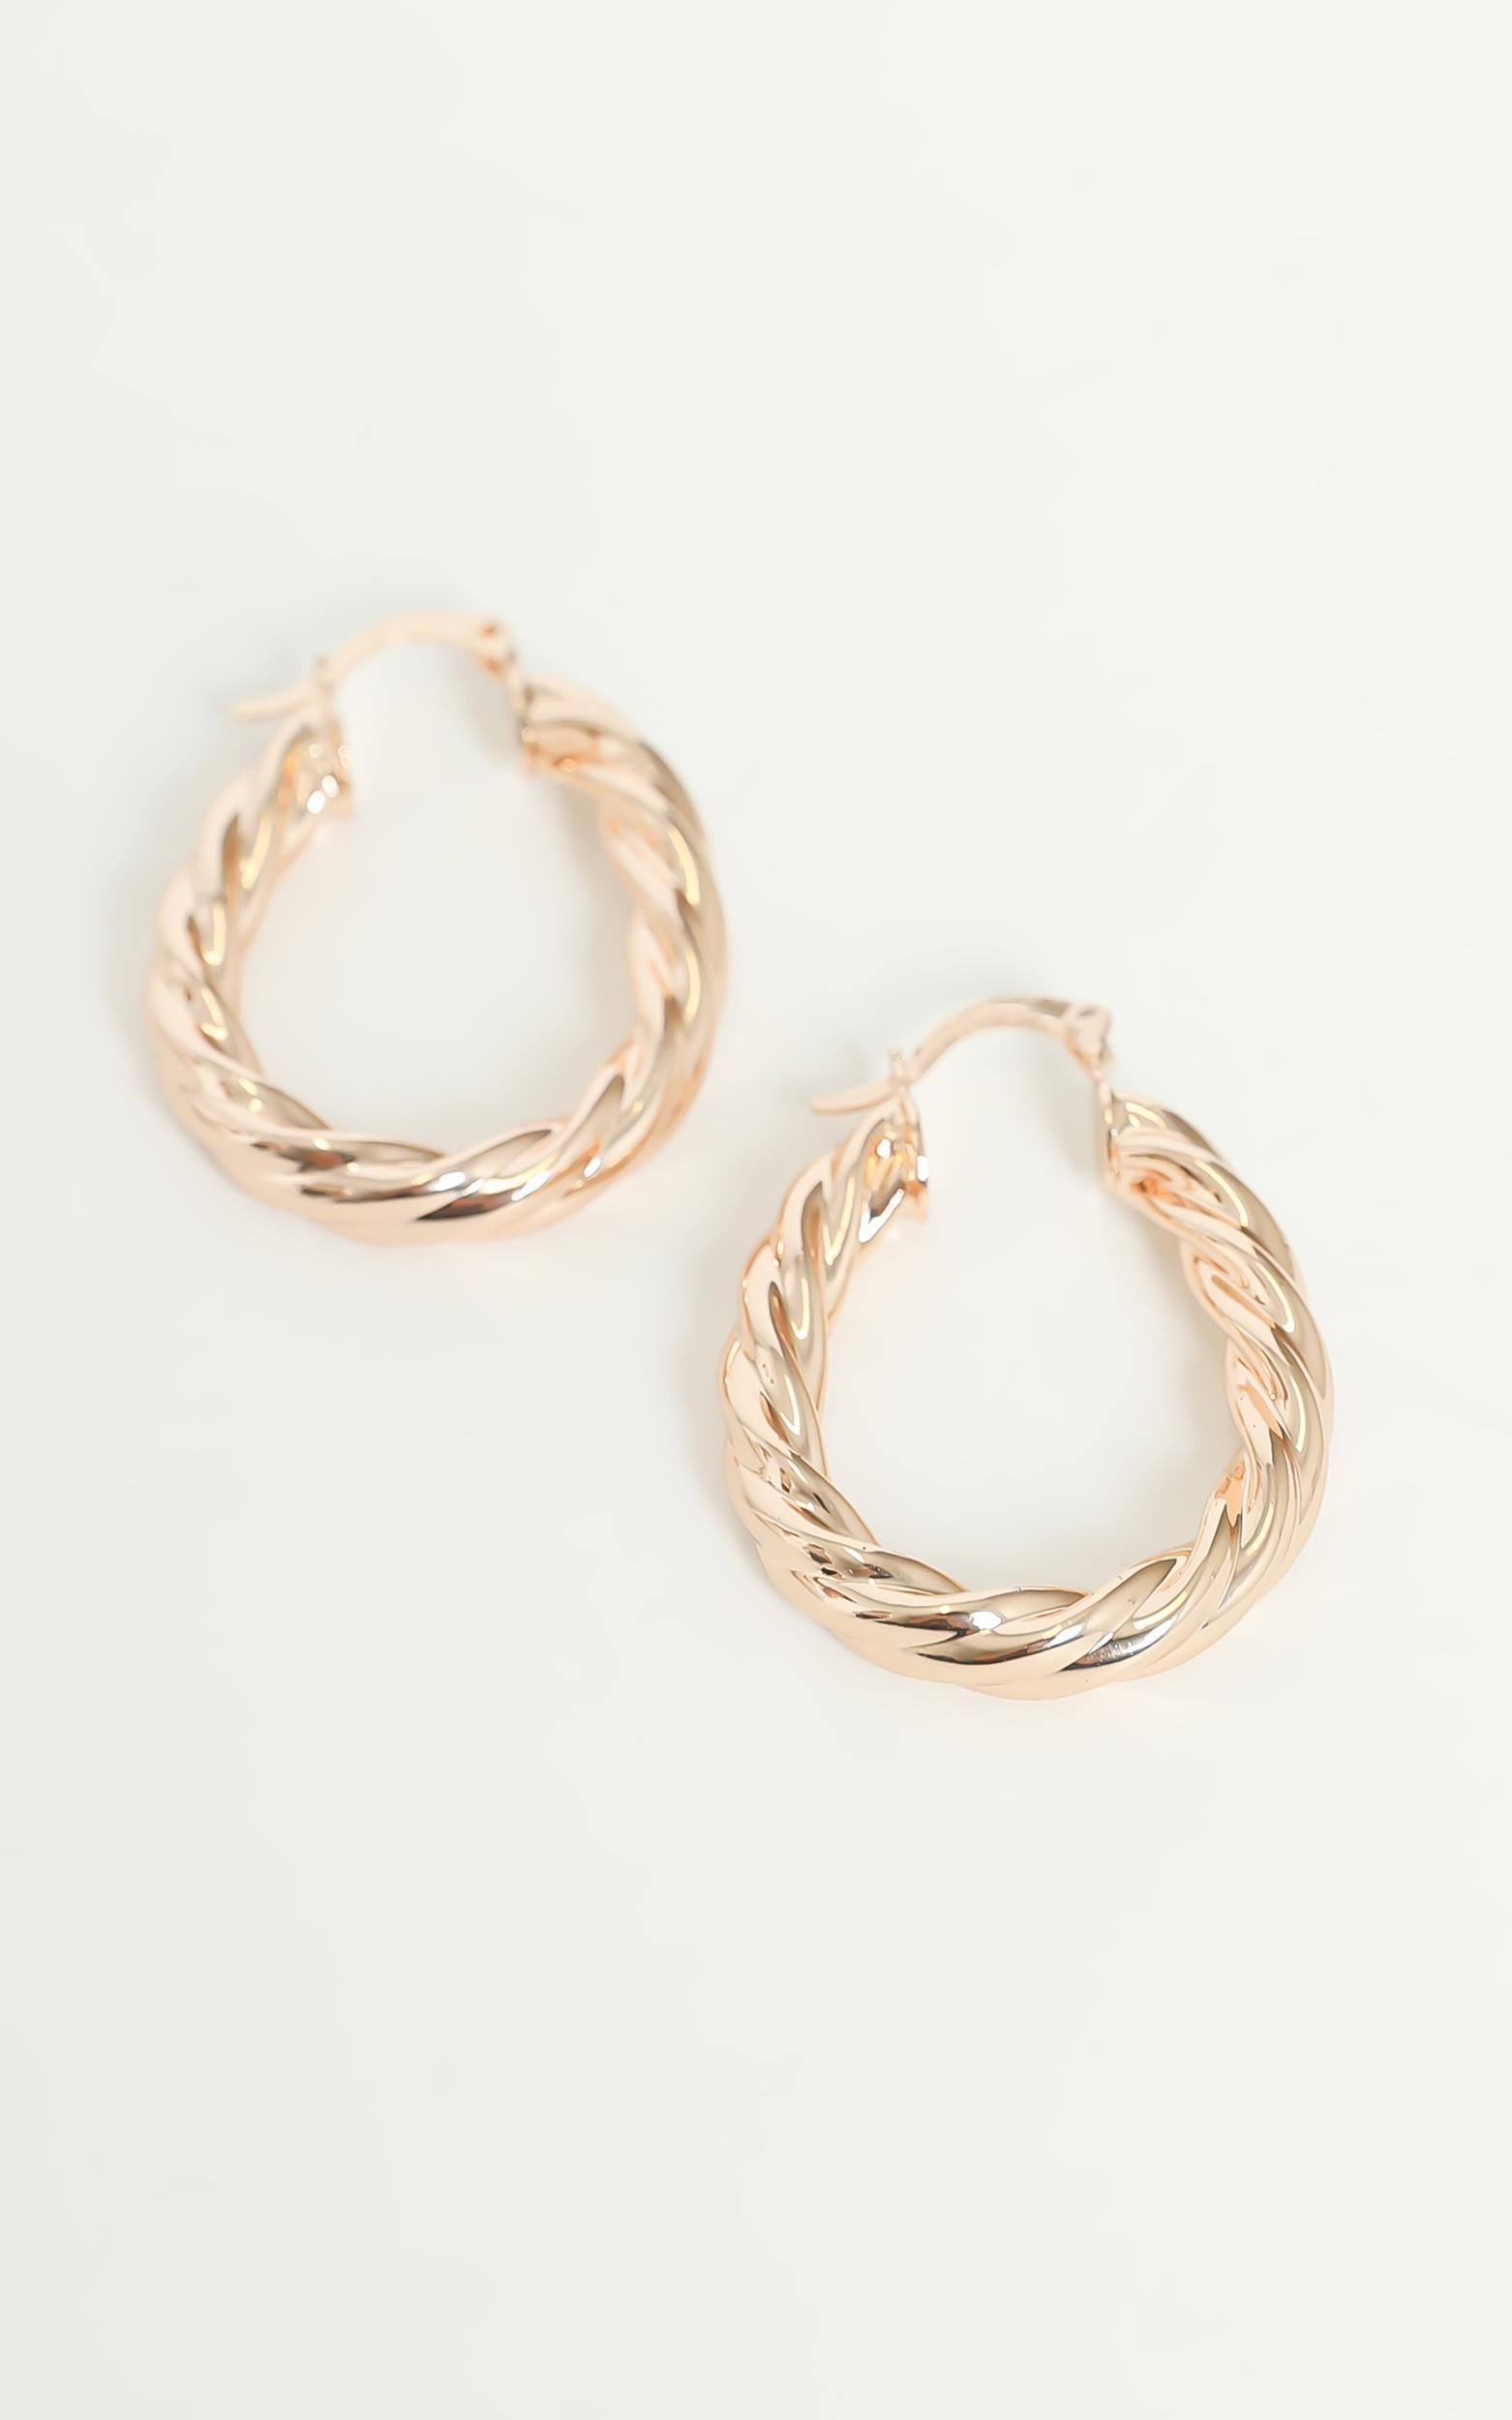 Twisted Hoop Earrings in Gold, , hi-res image number null